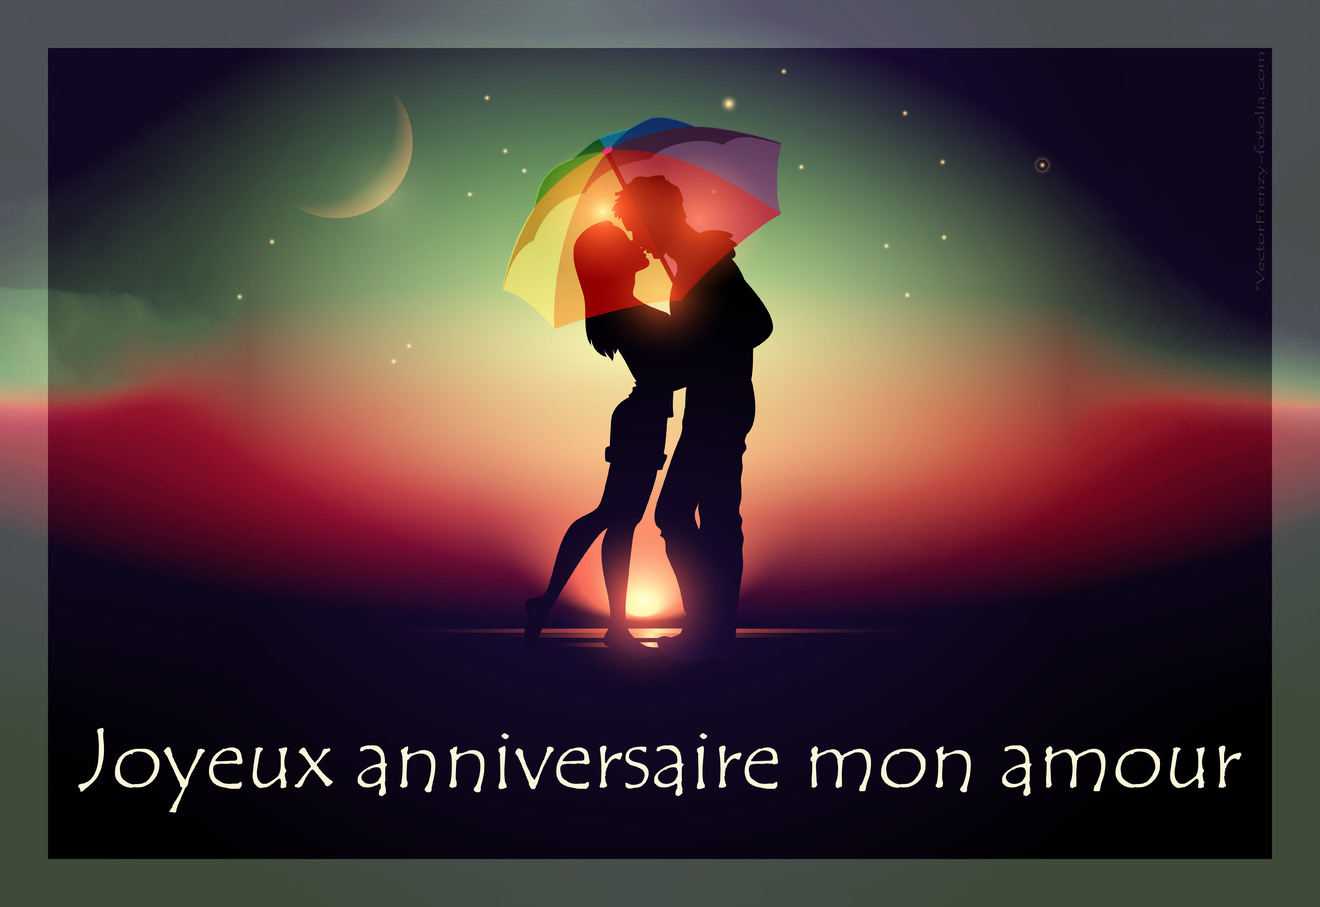 Fabuleux amour-anniversaire.jpg OO93